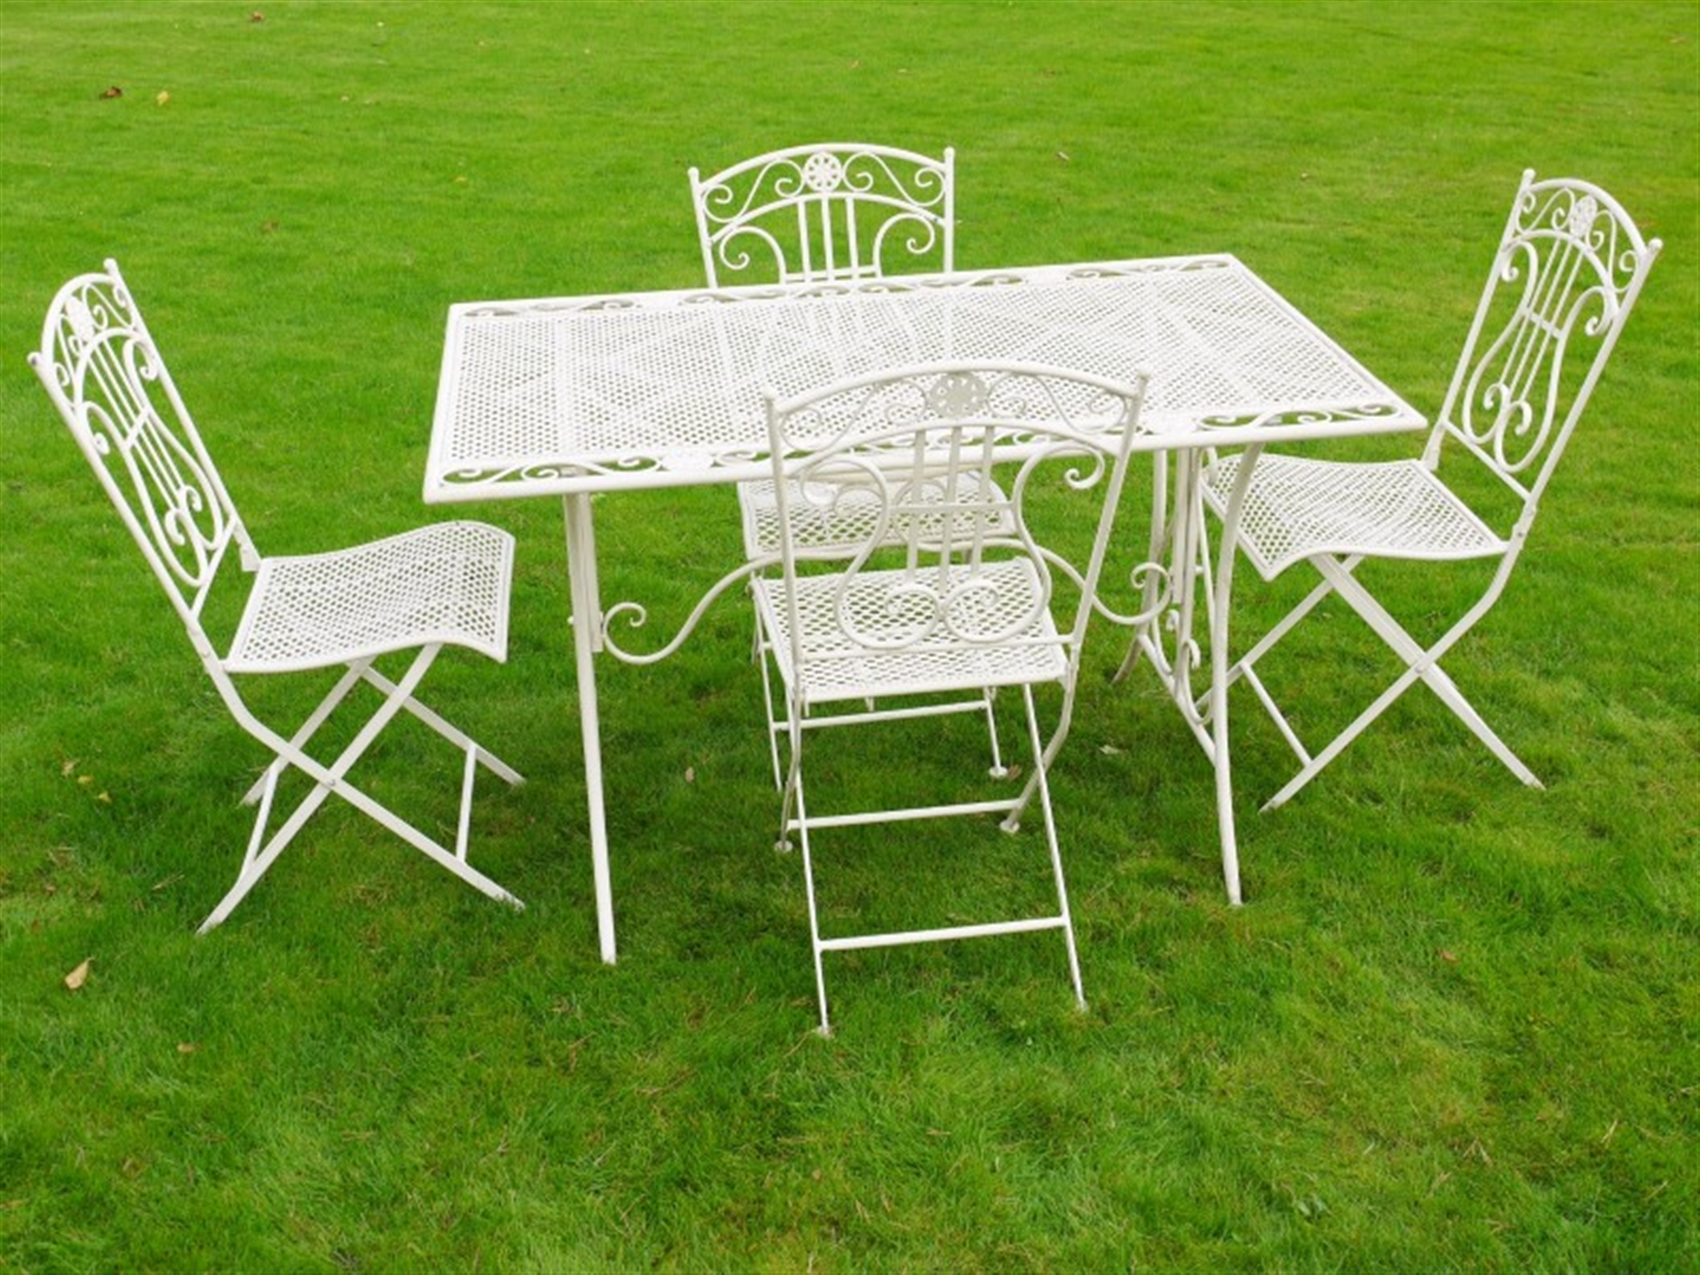 Decorate Outdoor Bistro Table Set With Chairs In Garden  : 34035878 from www.madepl.com size 1700 x 1275 jpeg 1295kB